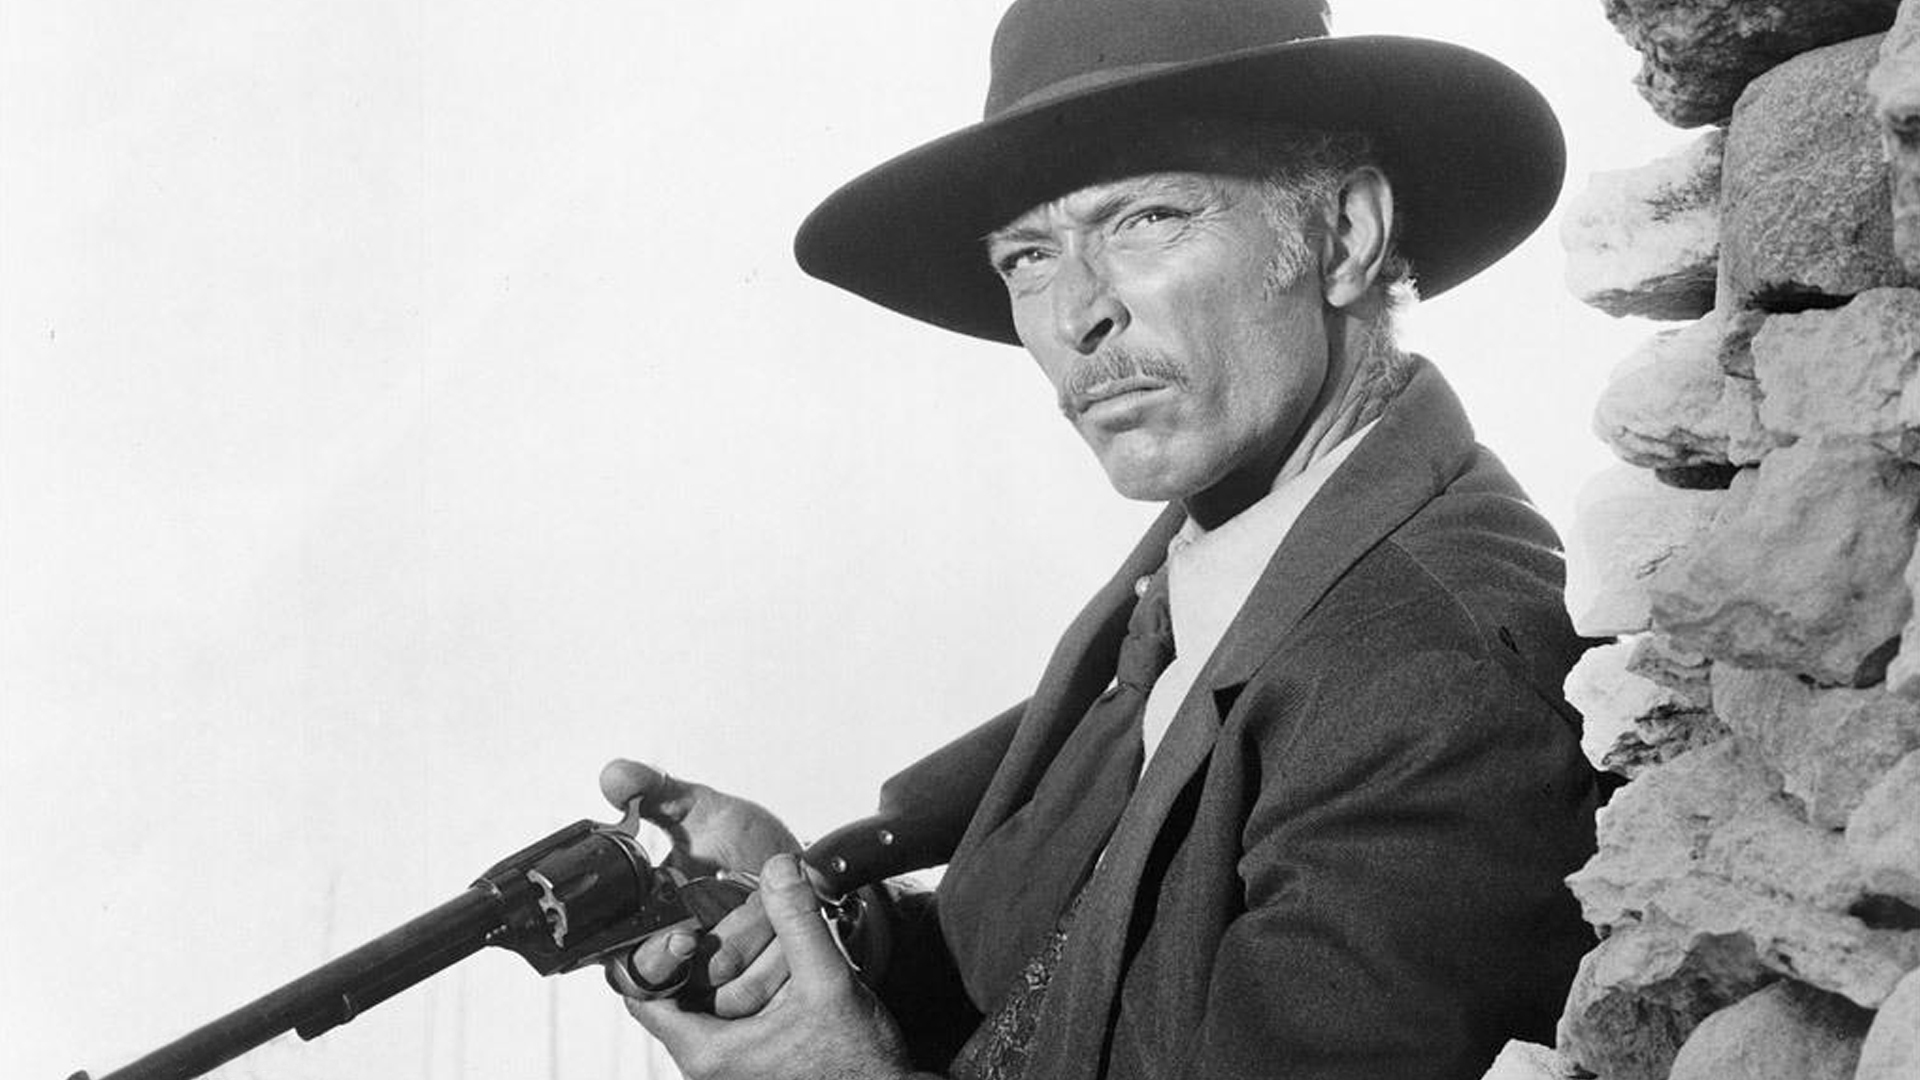 Lee Van Cleef LEE VAN CLEEF WALLPAPERS FREE Wallpapers amp Background